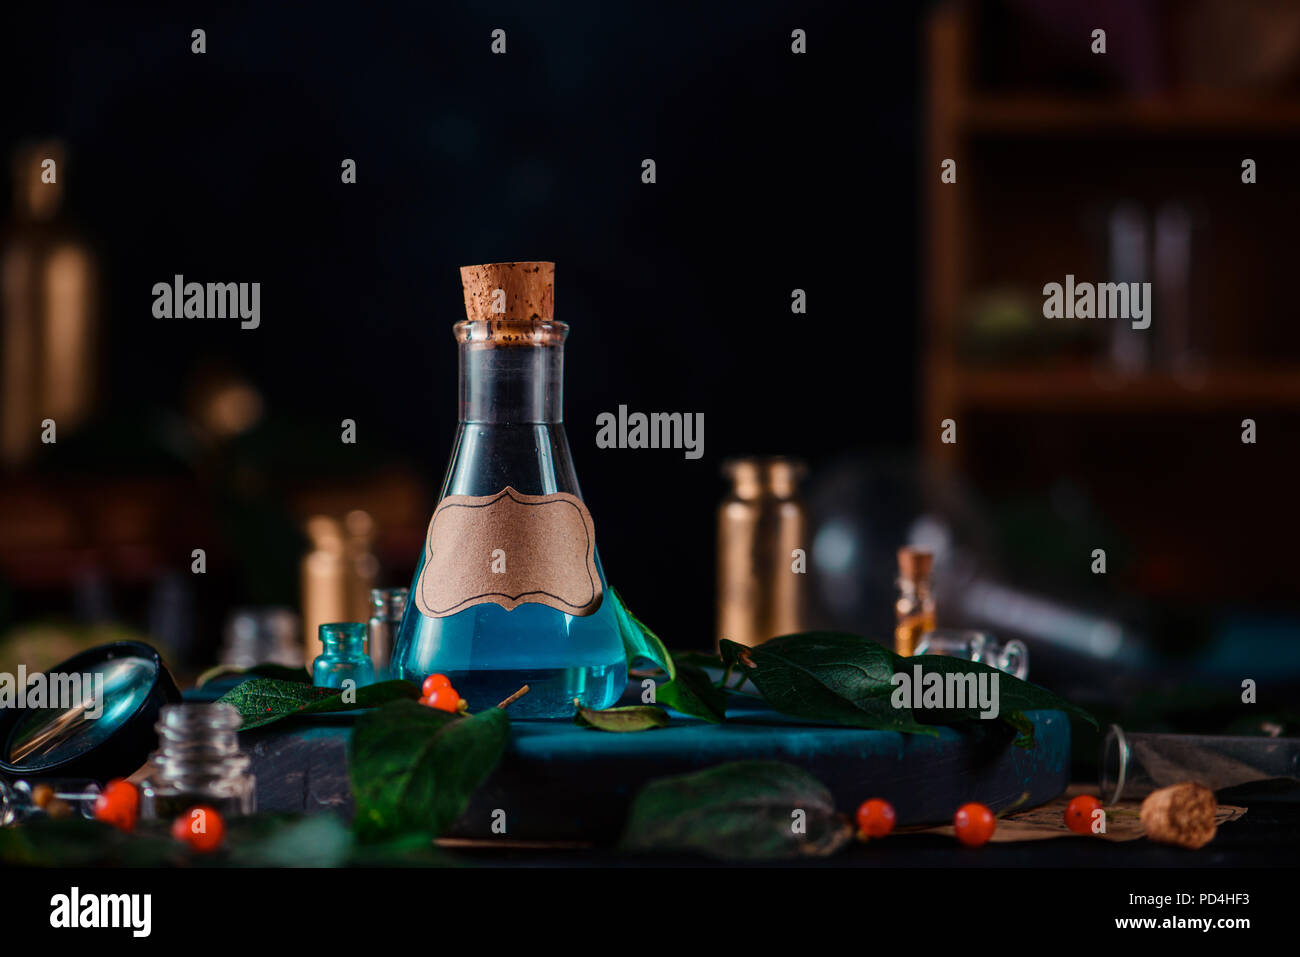 Modern witchcraft concept header. Blank label on a magic potion bottle. Potions, berries, herbs and occult equipment. Magical still life with copy space on a dark background. - Stock Image